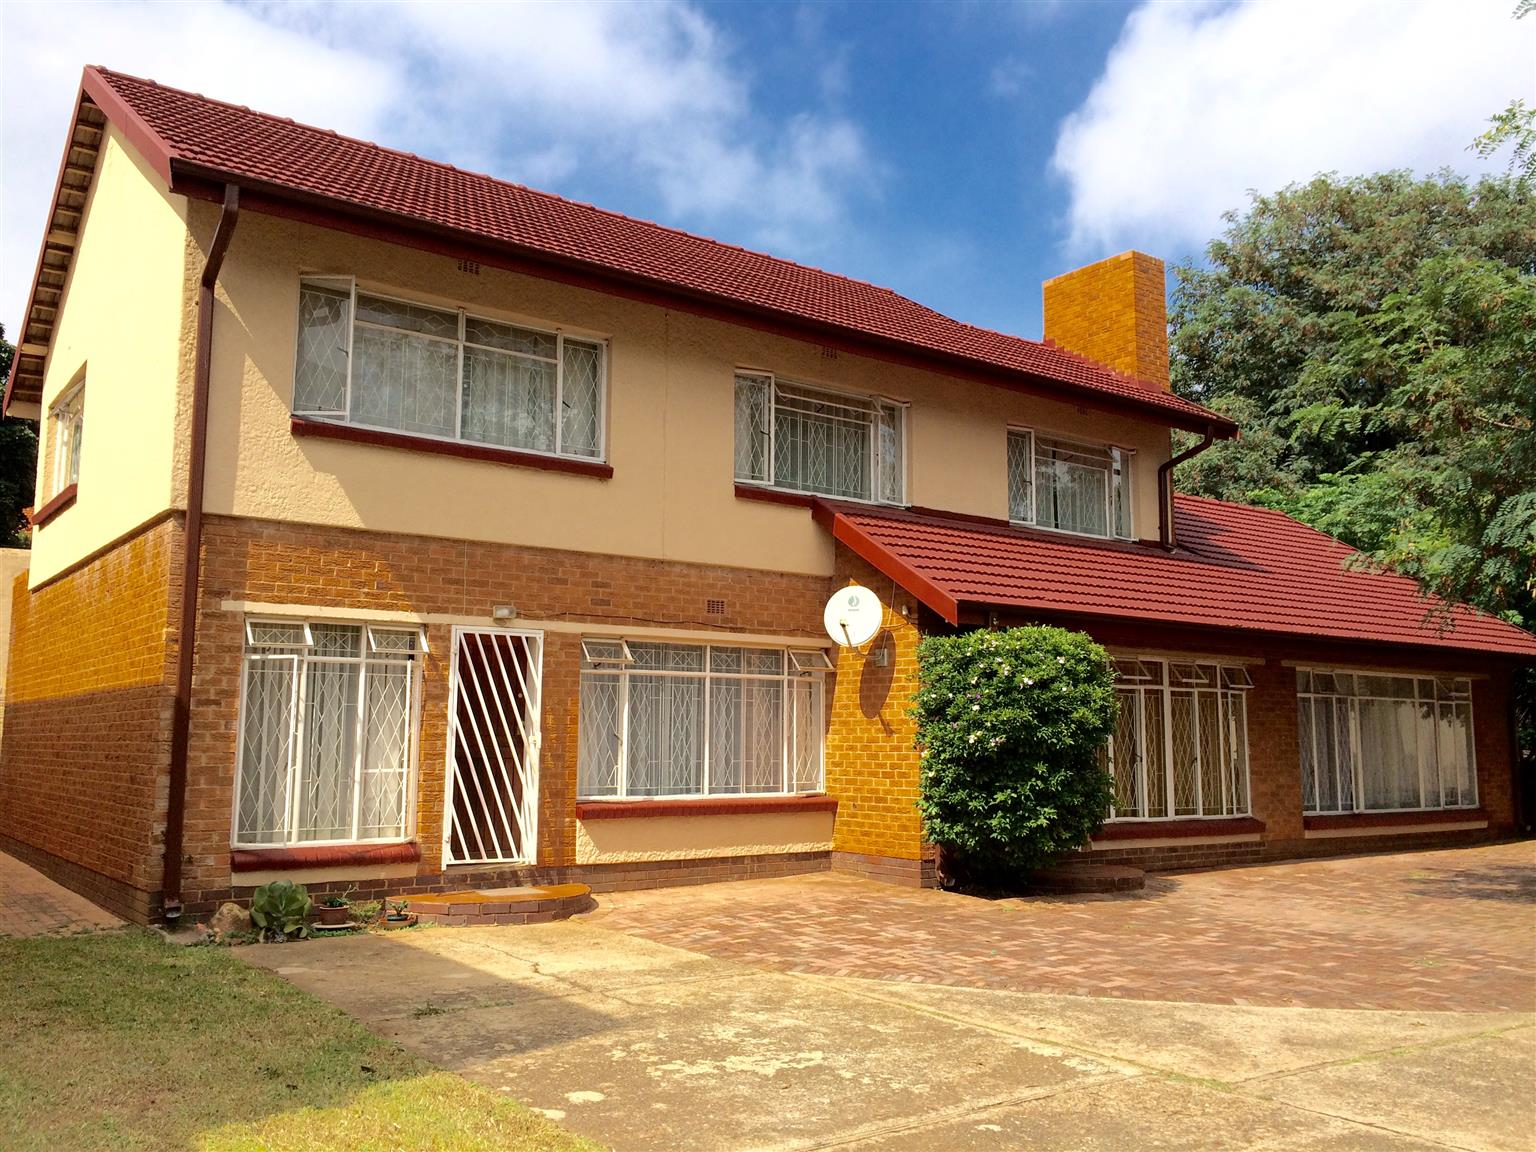 AUCKLAND PARK, UPMARKET GARDEN FLAT FOR YOUNG PROFESSIONAL OR SENIOR STUDENT